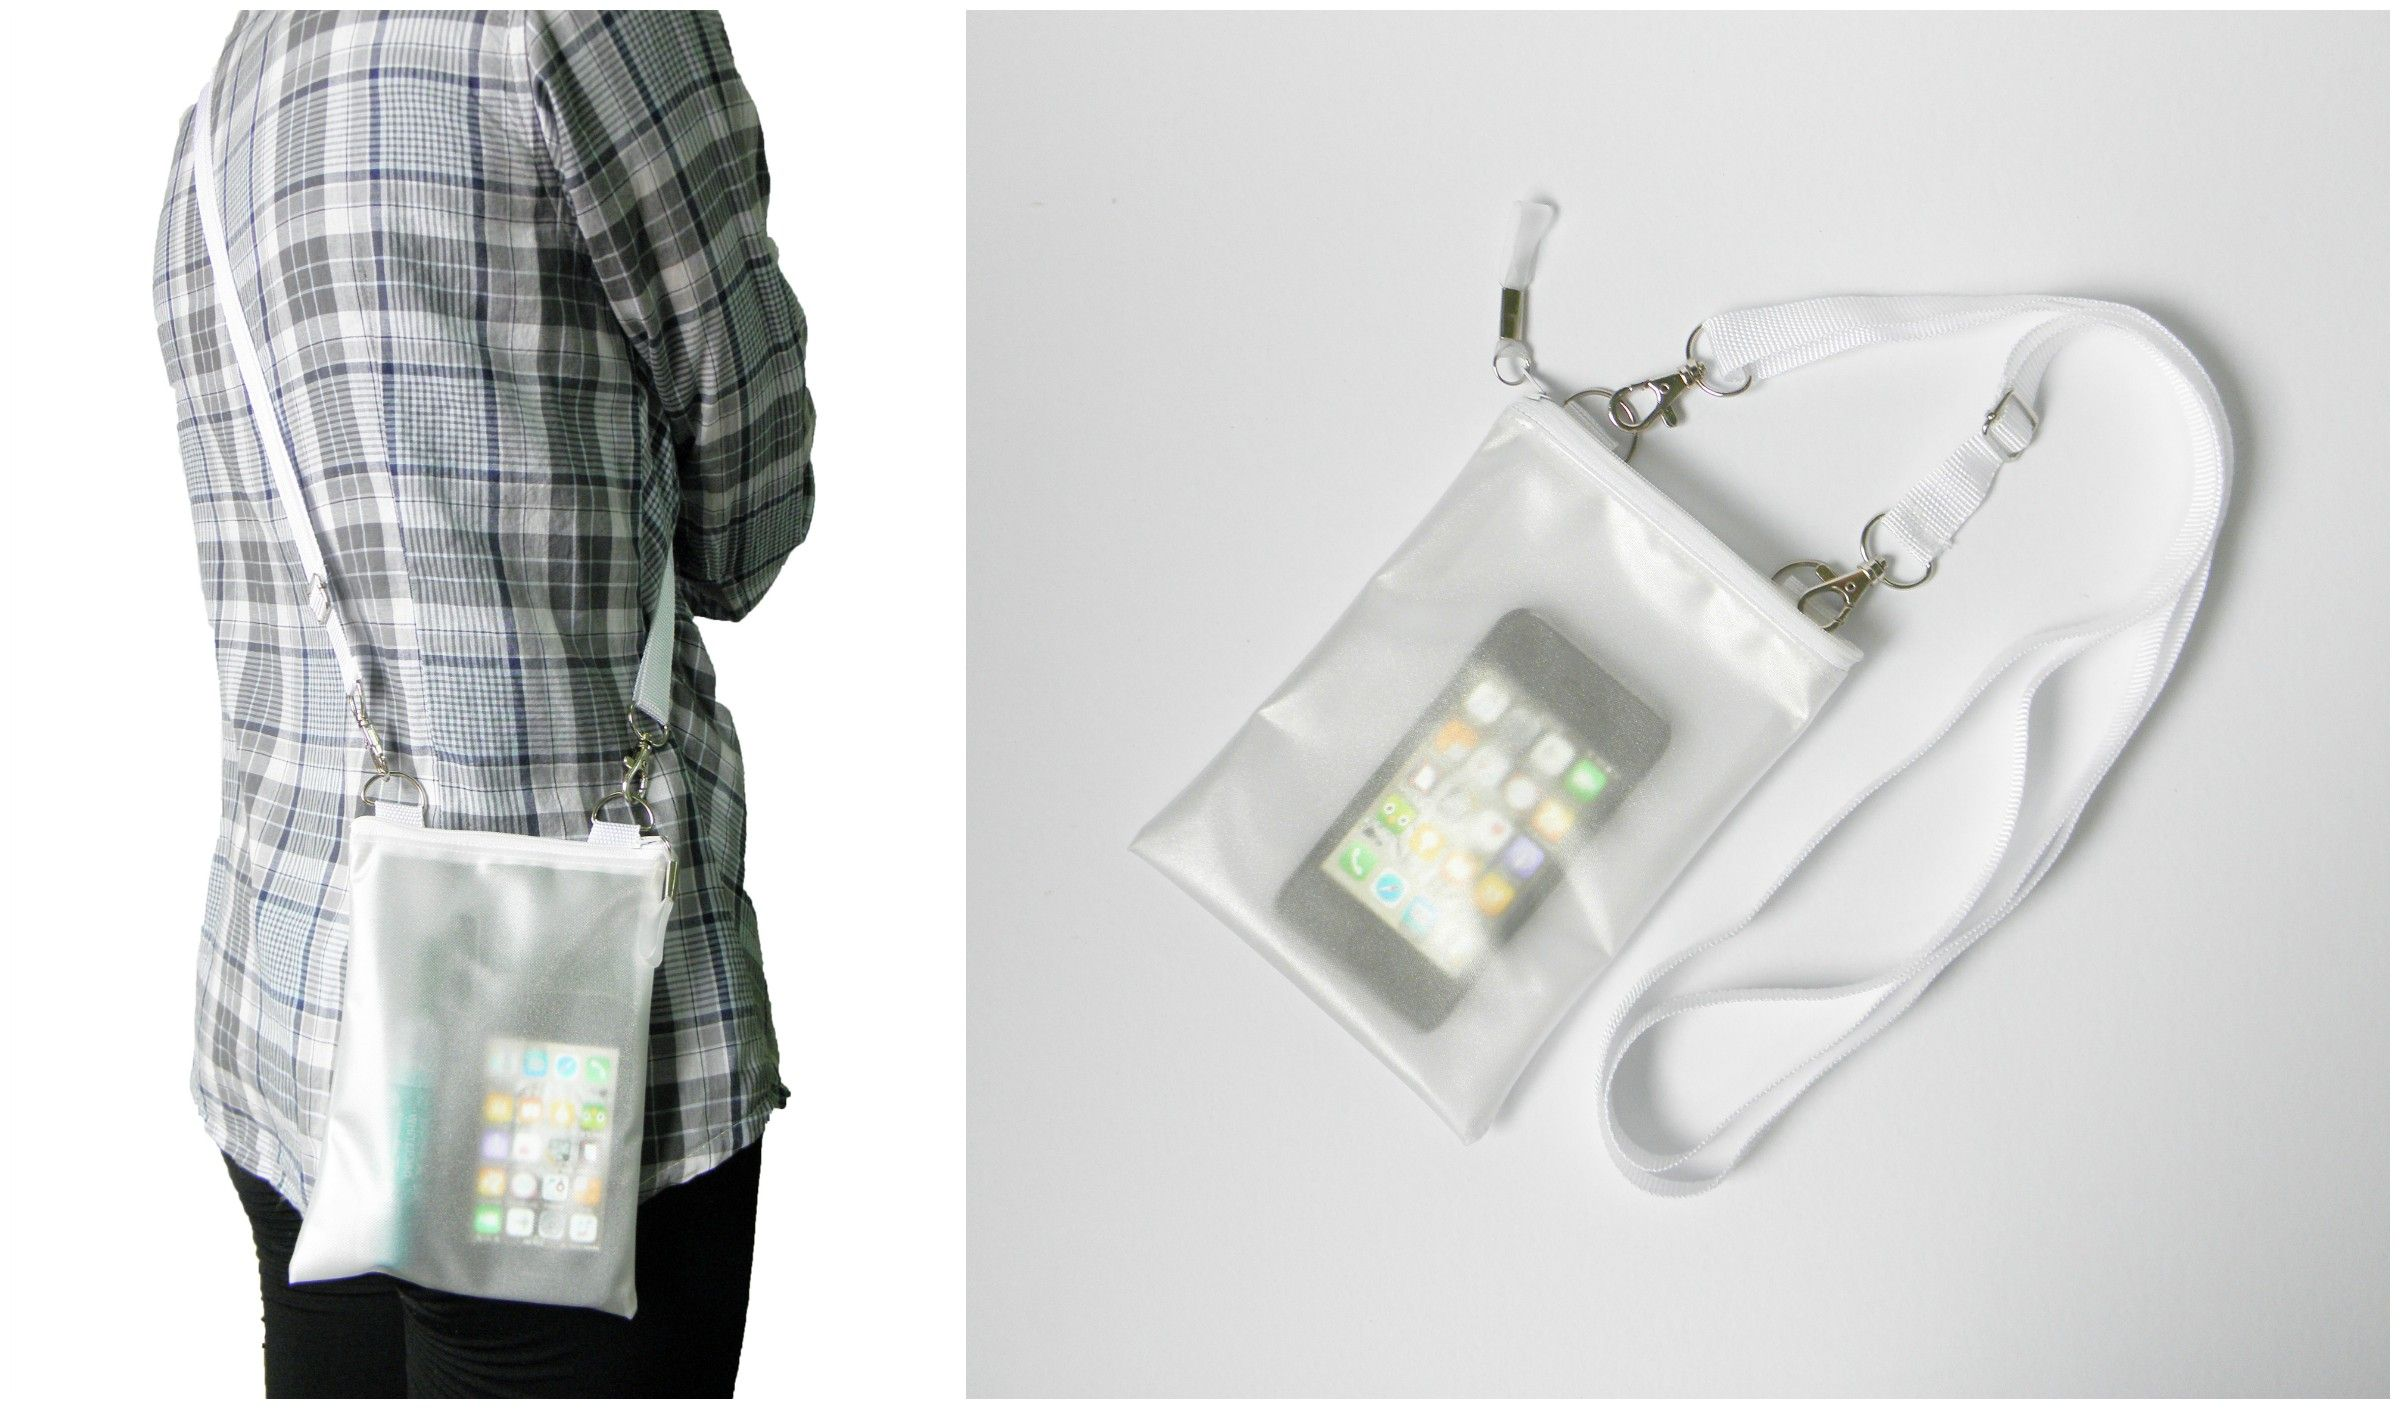 Small White Clear Translucent Iphone Crossbody Bag   Please visit us at www.etsy.com/shop/Trixiesky   to see more of our wonderful products.